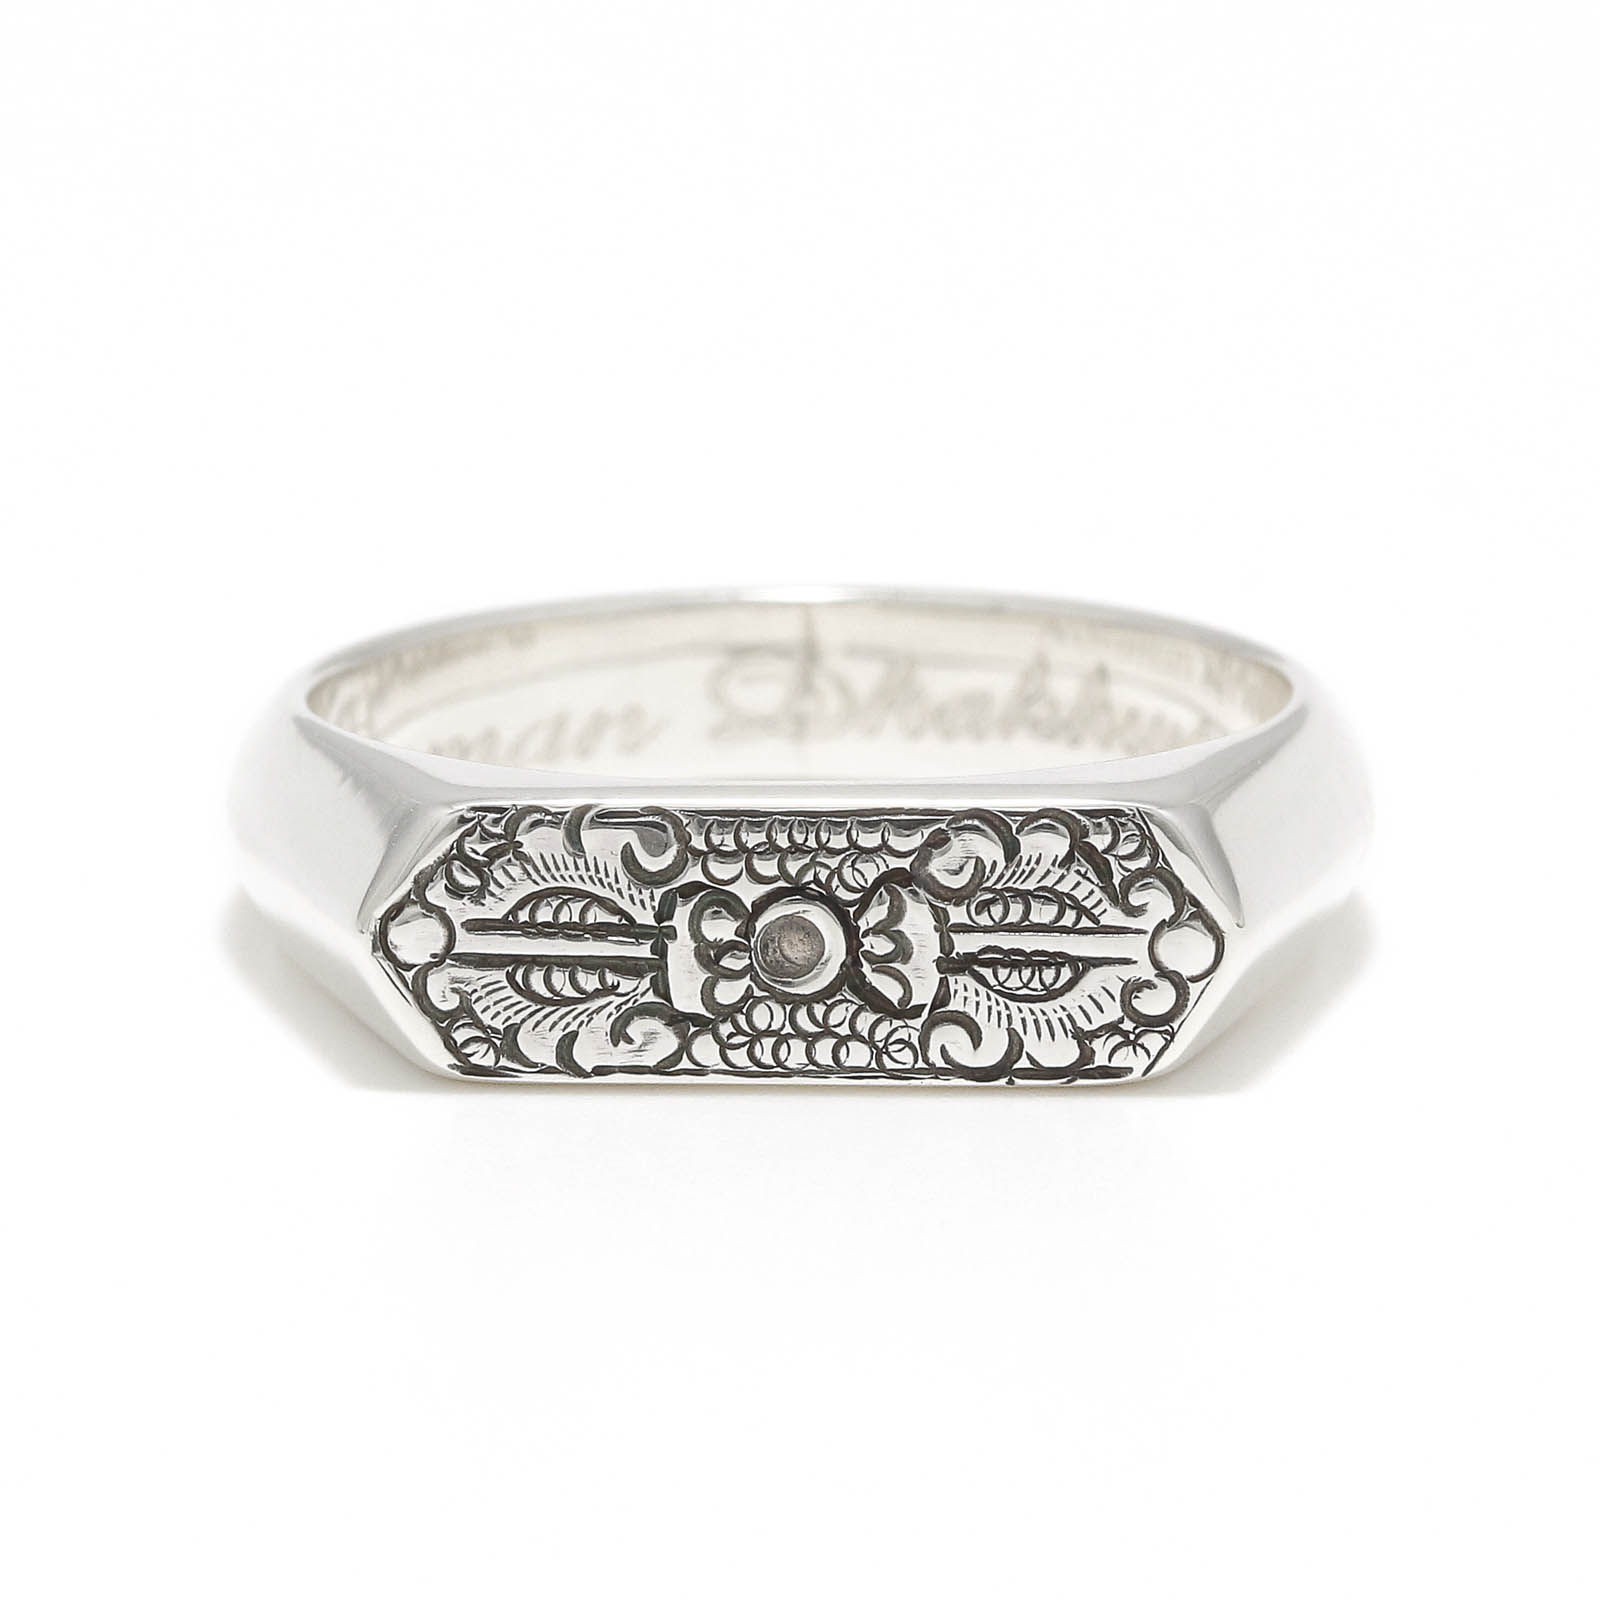 Narrow Dorje Carved Signet Ring